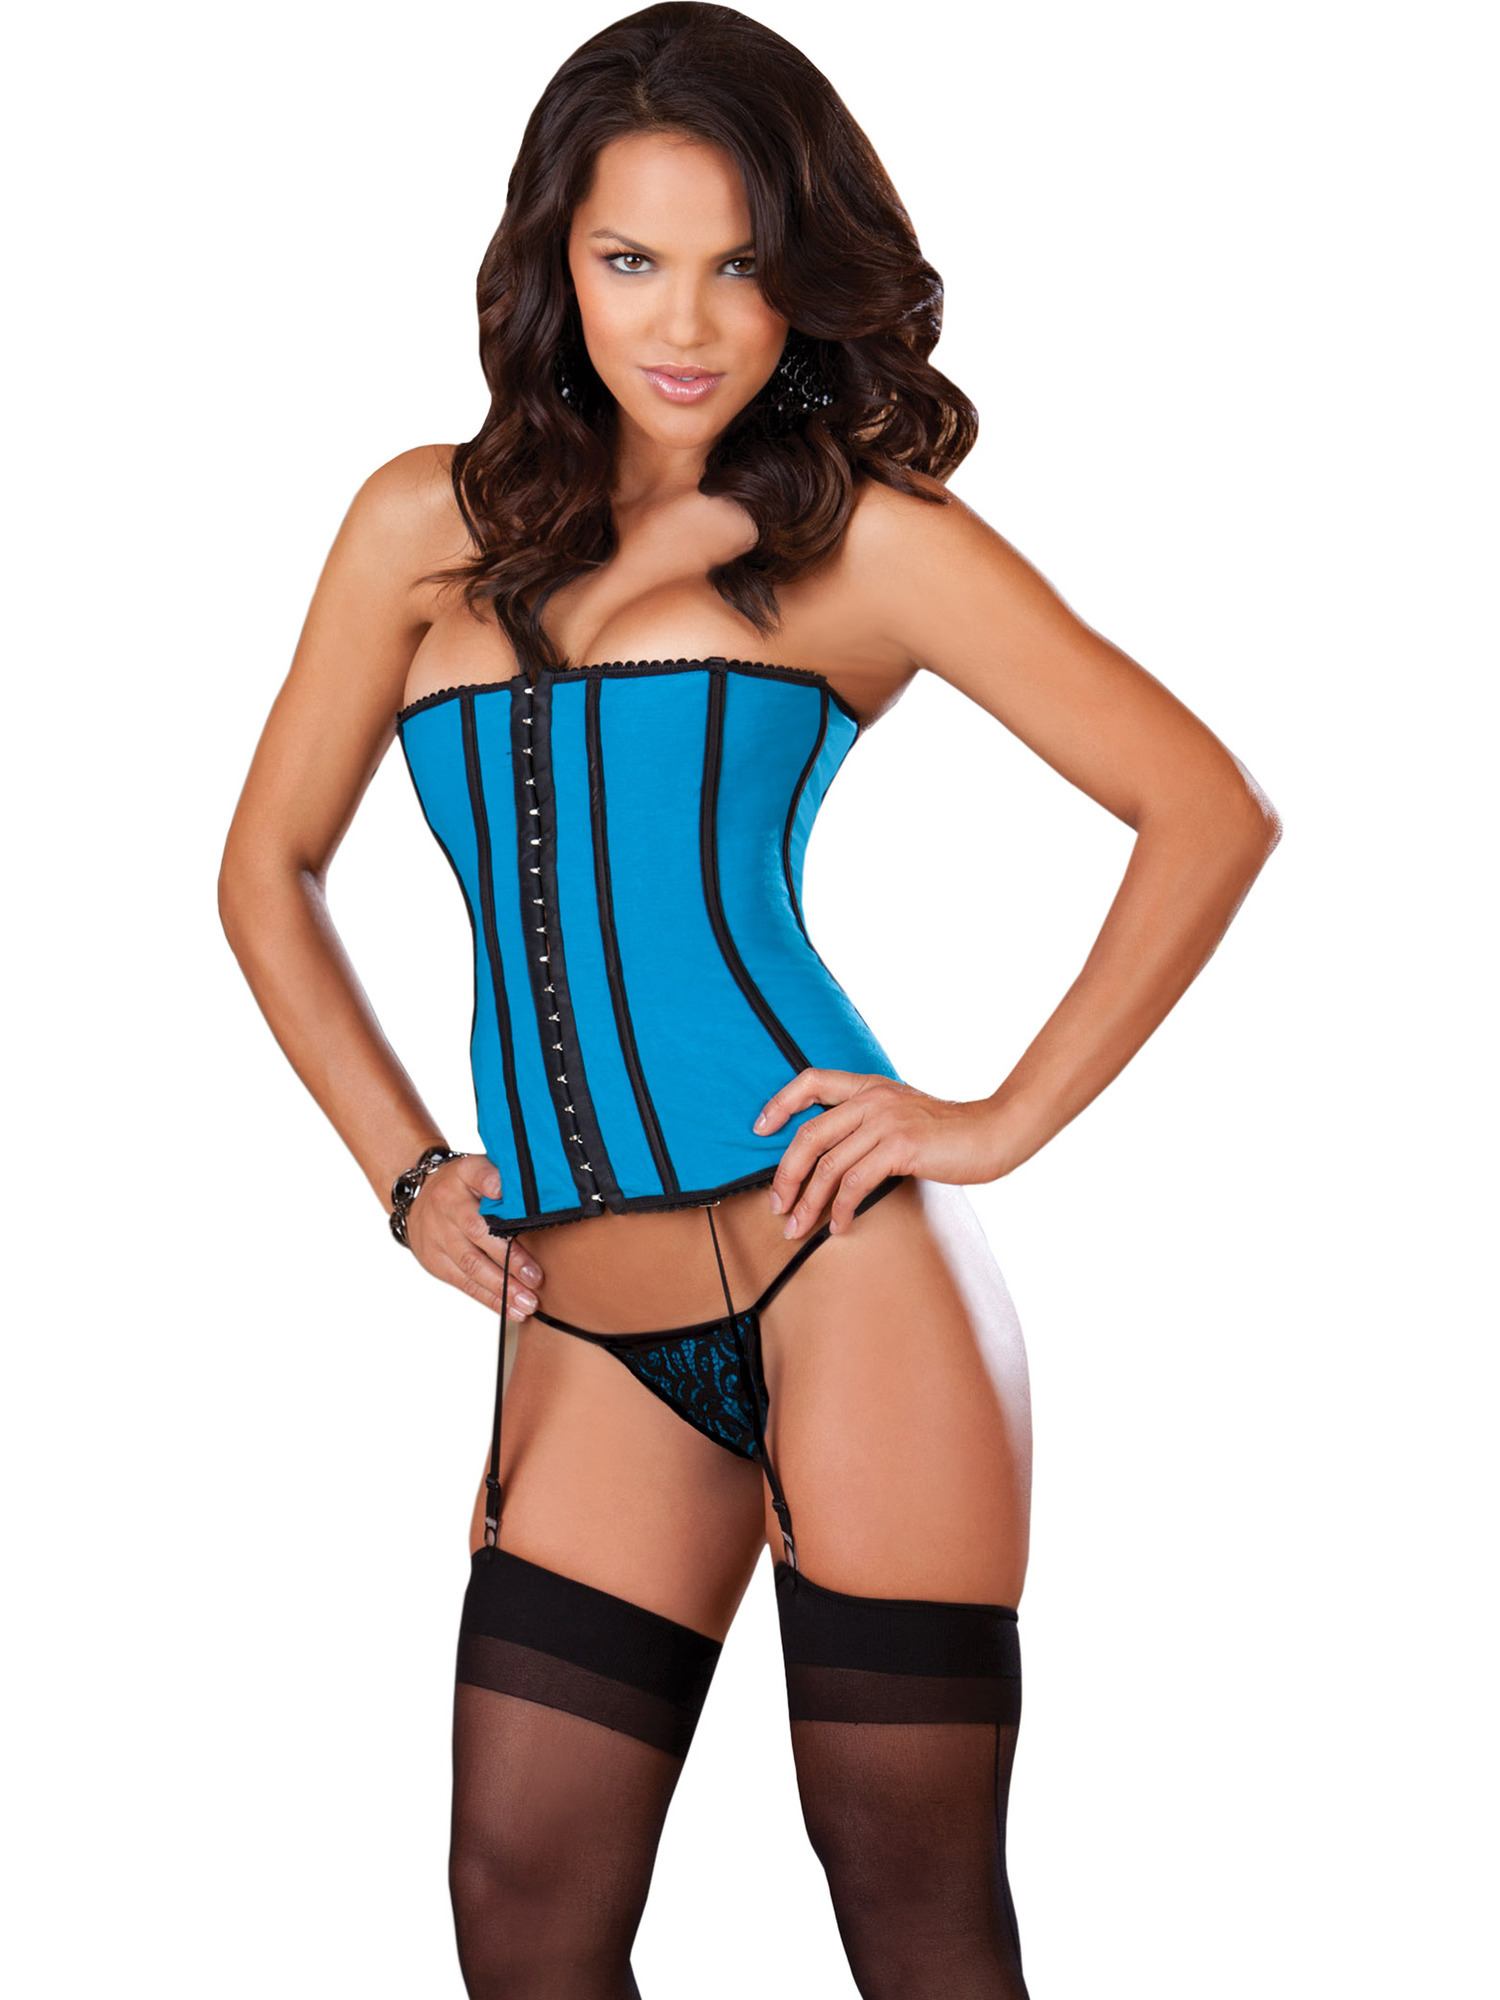 471a1515849 Dreamgirl Int - Sexy Reversible Blue Satin Black Overlay Corset Lace UP  Garters Thong - Walmart.com